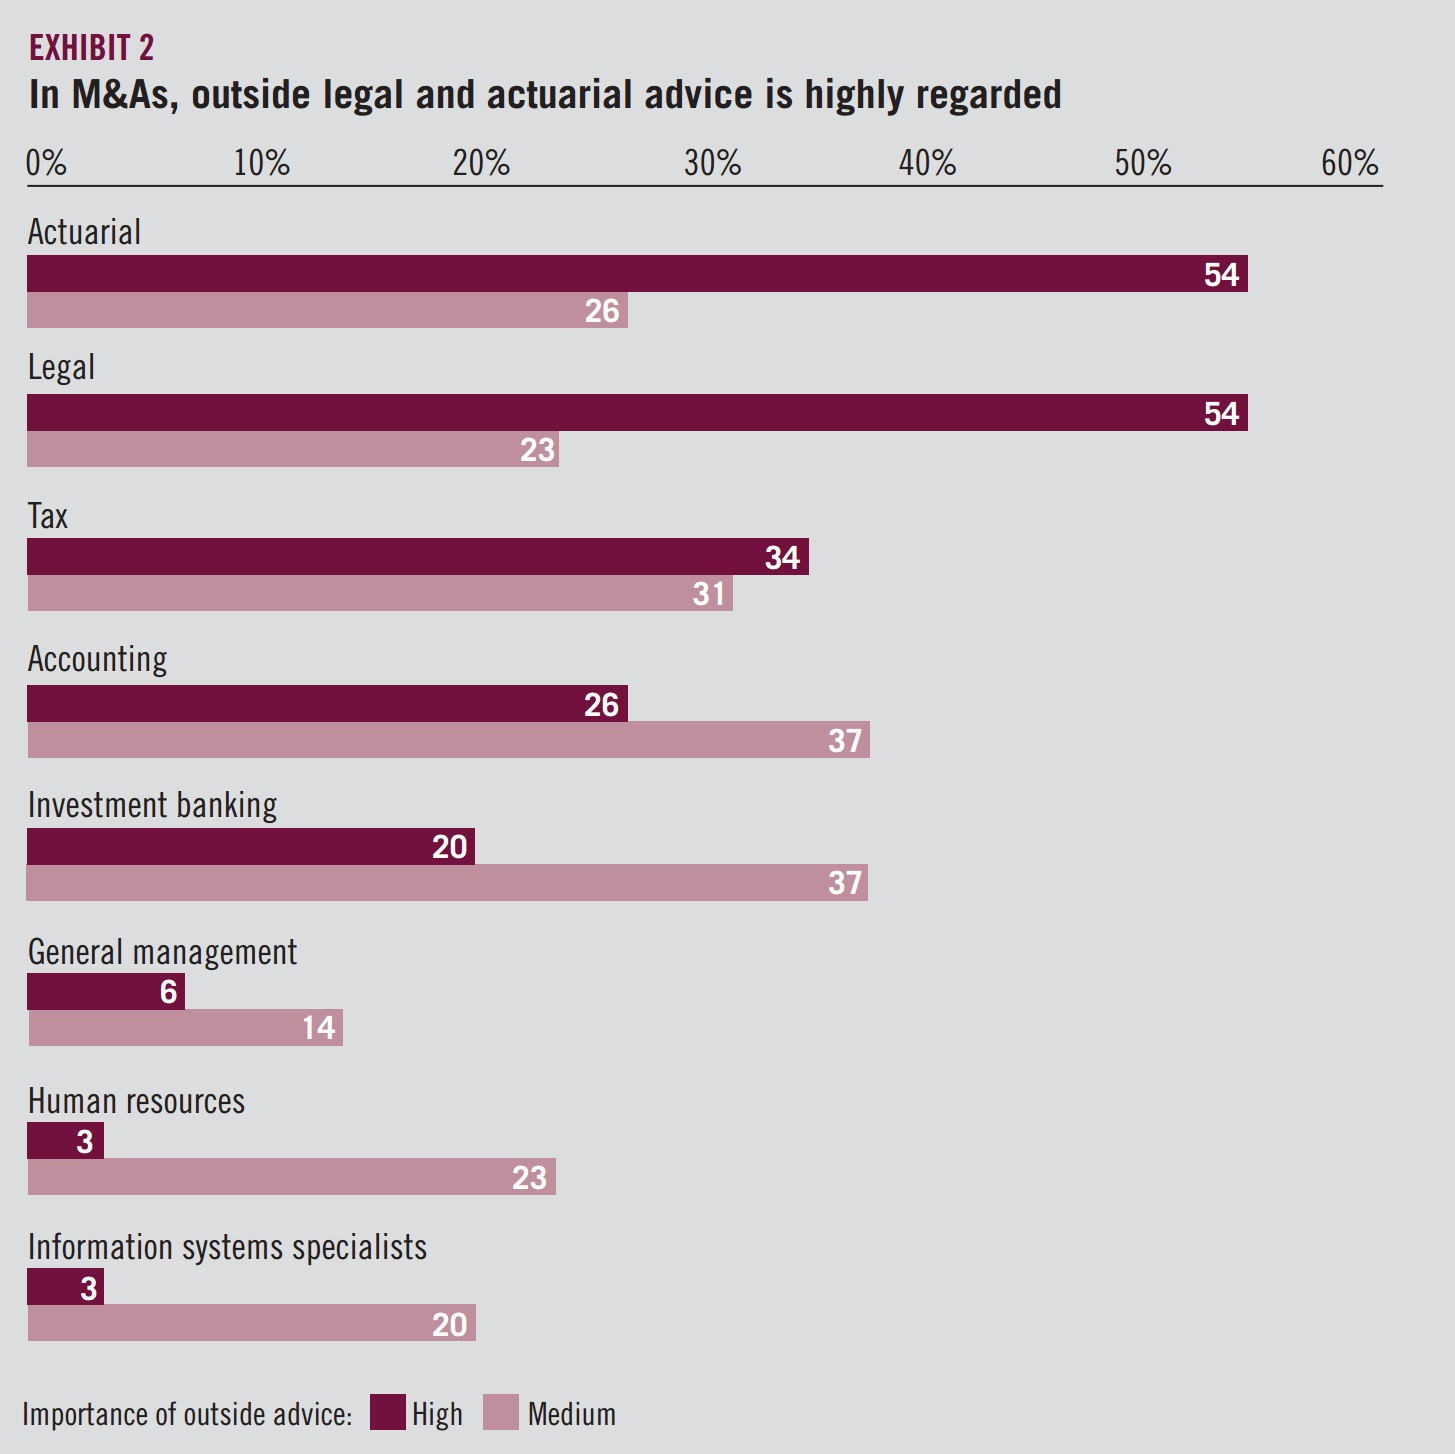 Exhibit 2 - In M&As, outside legal and actuarial advice is highly regarded